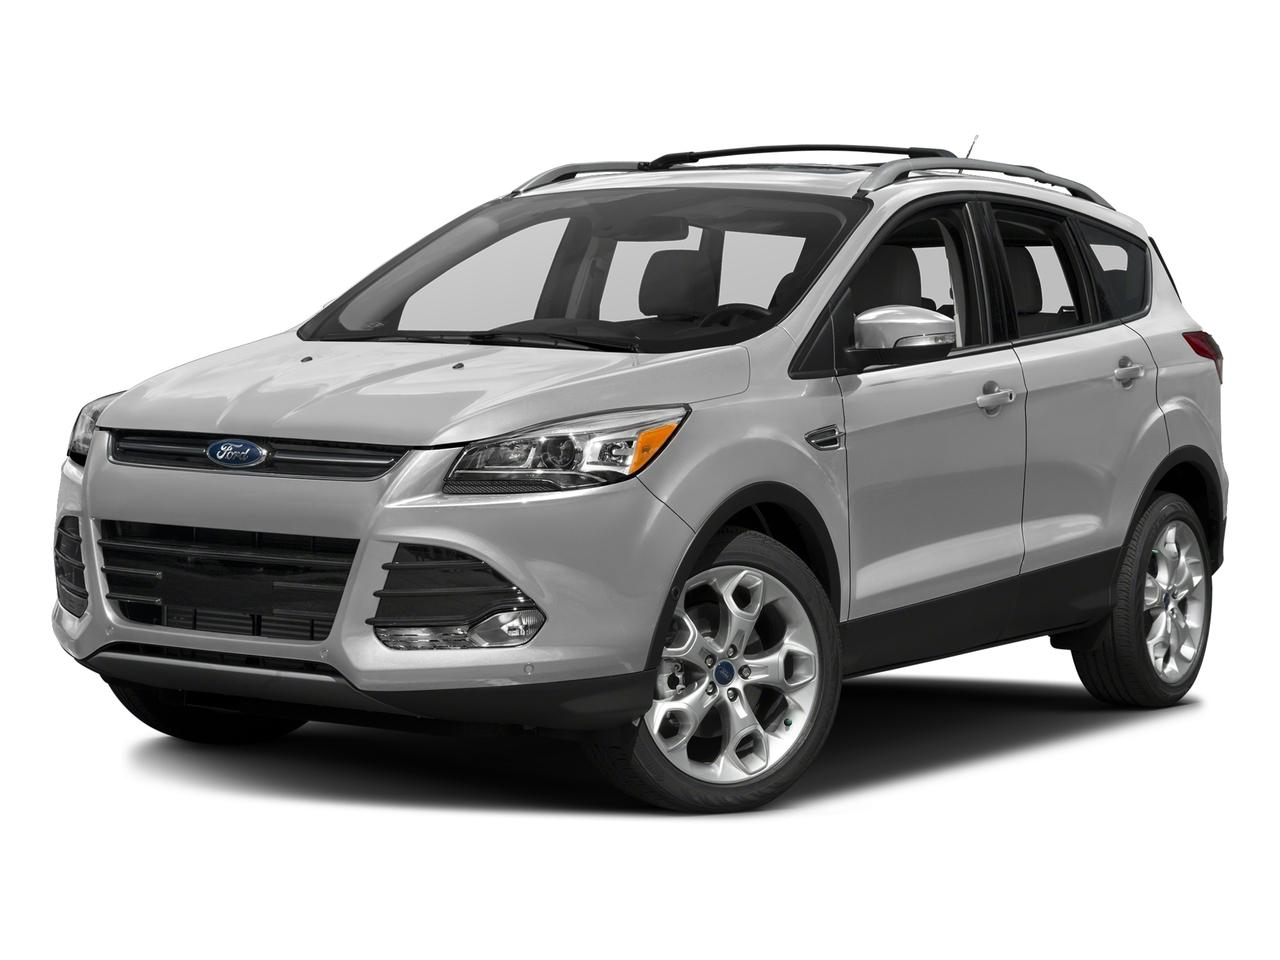 2016 Ford Escape Vehicle Photo in Brockton, MA 02301